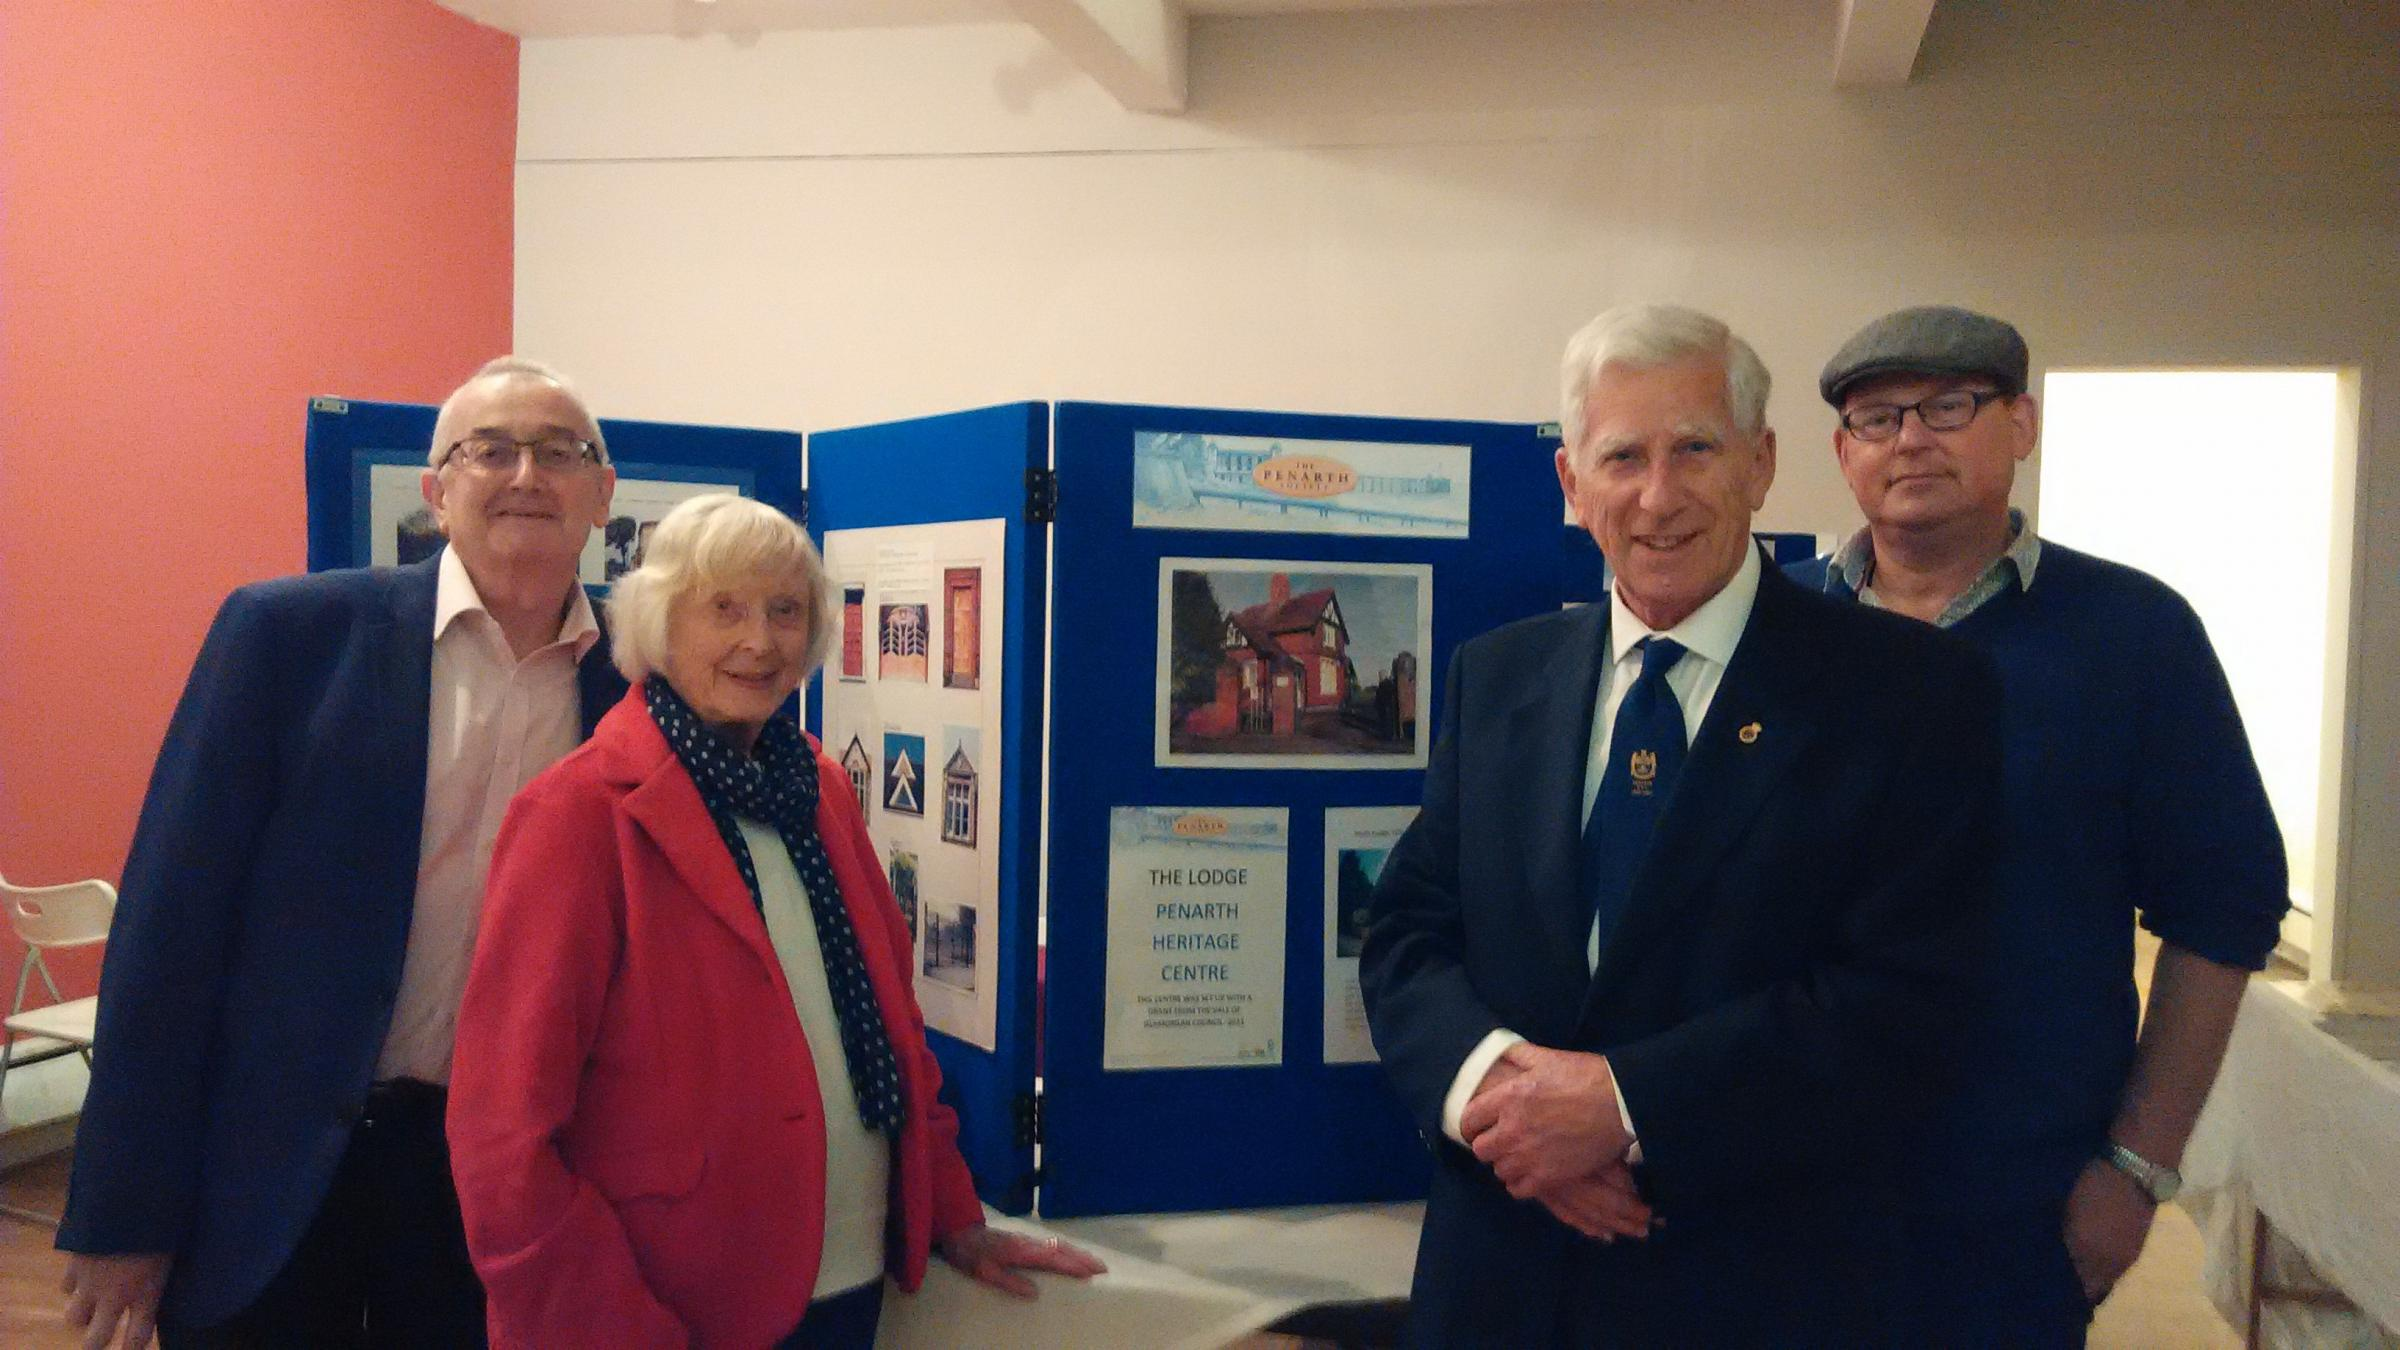 Members of Penarth Civic Society and the Penarth Tourism and Visitor Assocation (L to R): Chris Wyatt, Audrey Poole, Anthony Ernest and Martin Gossage